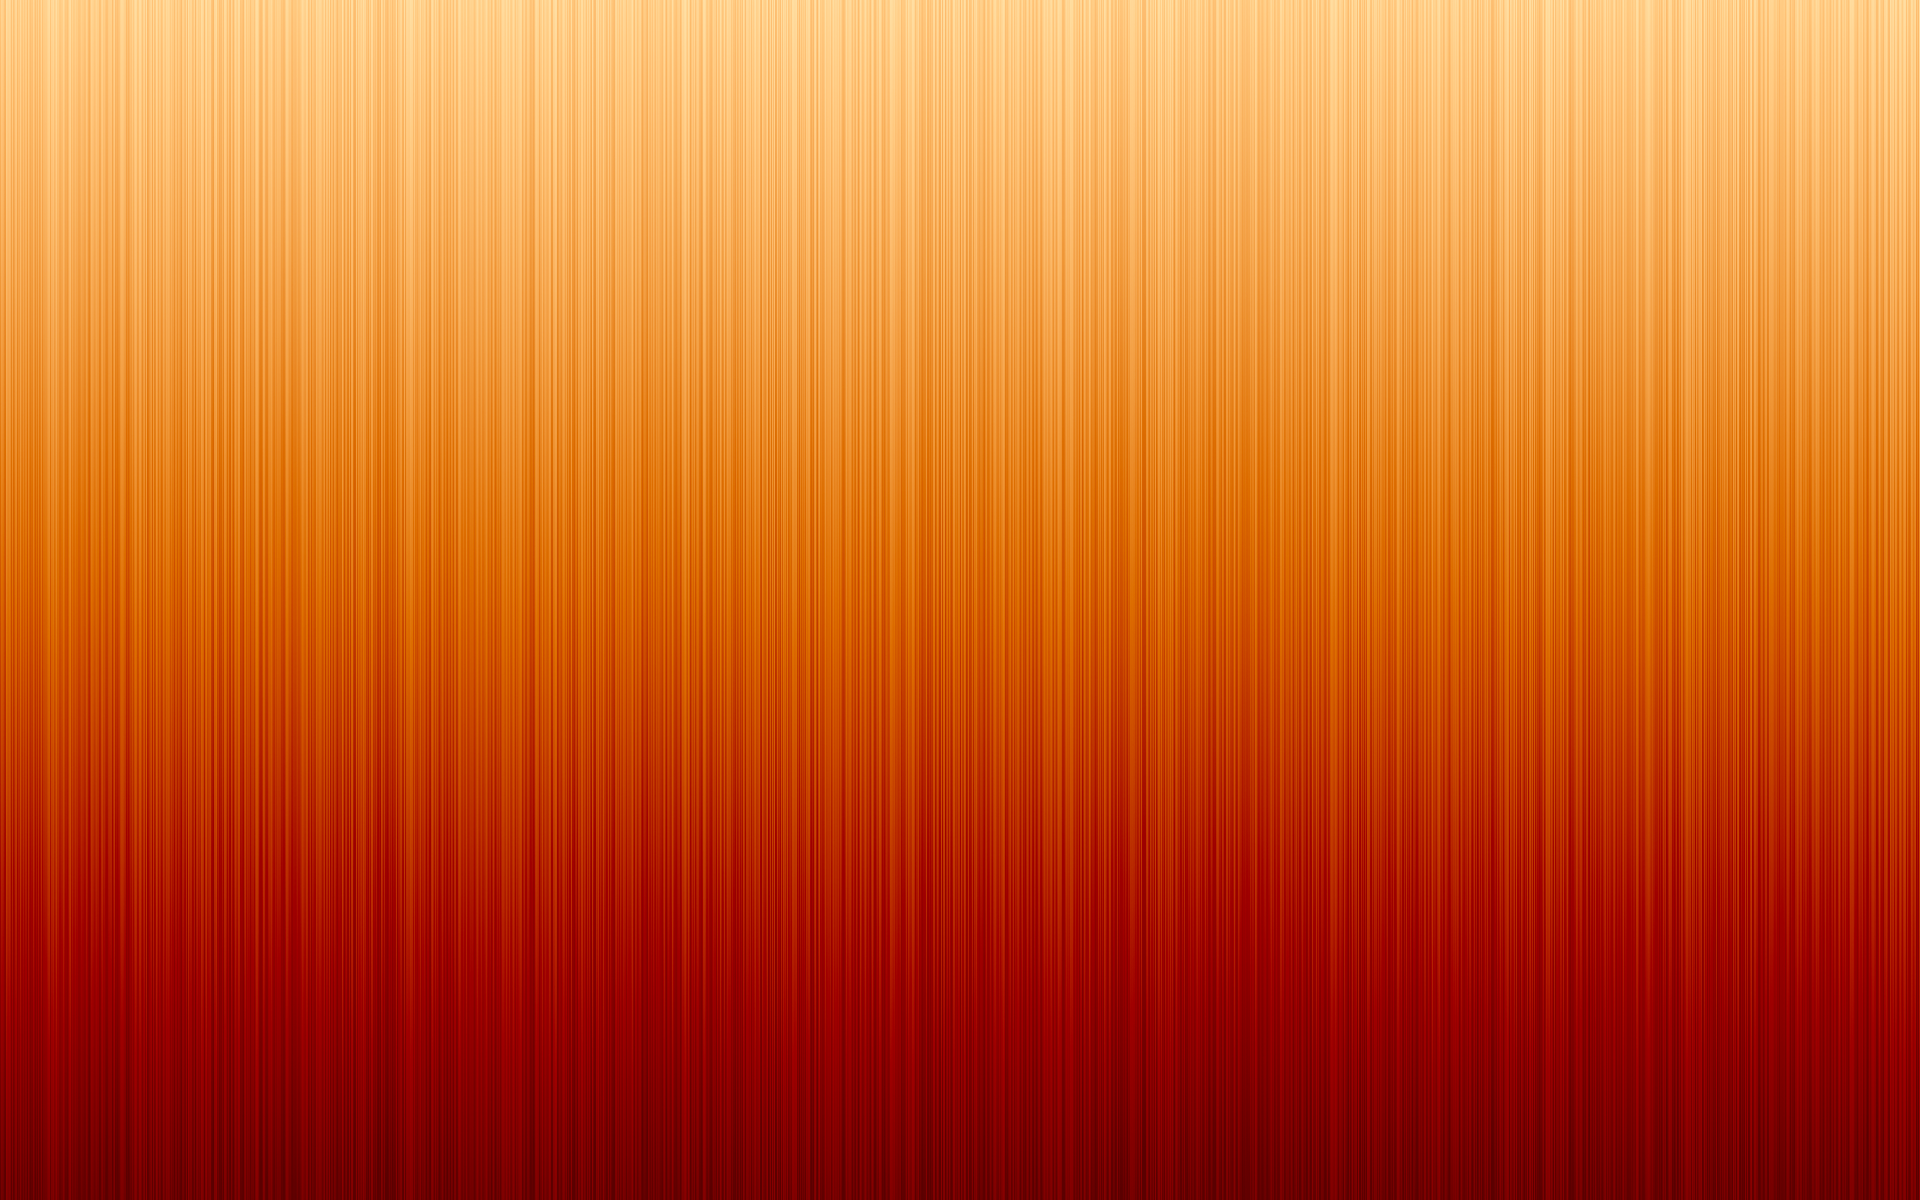 HD Orange Wallpaper